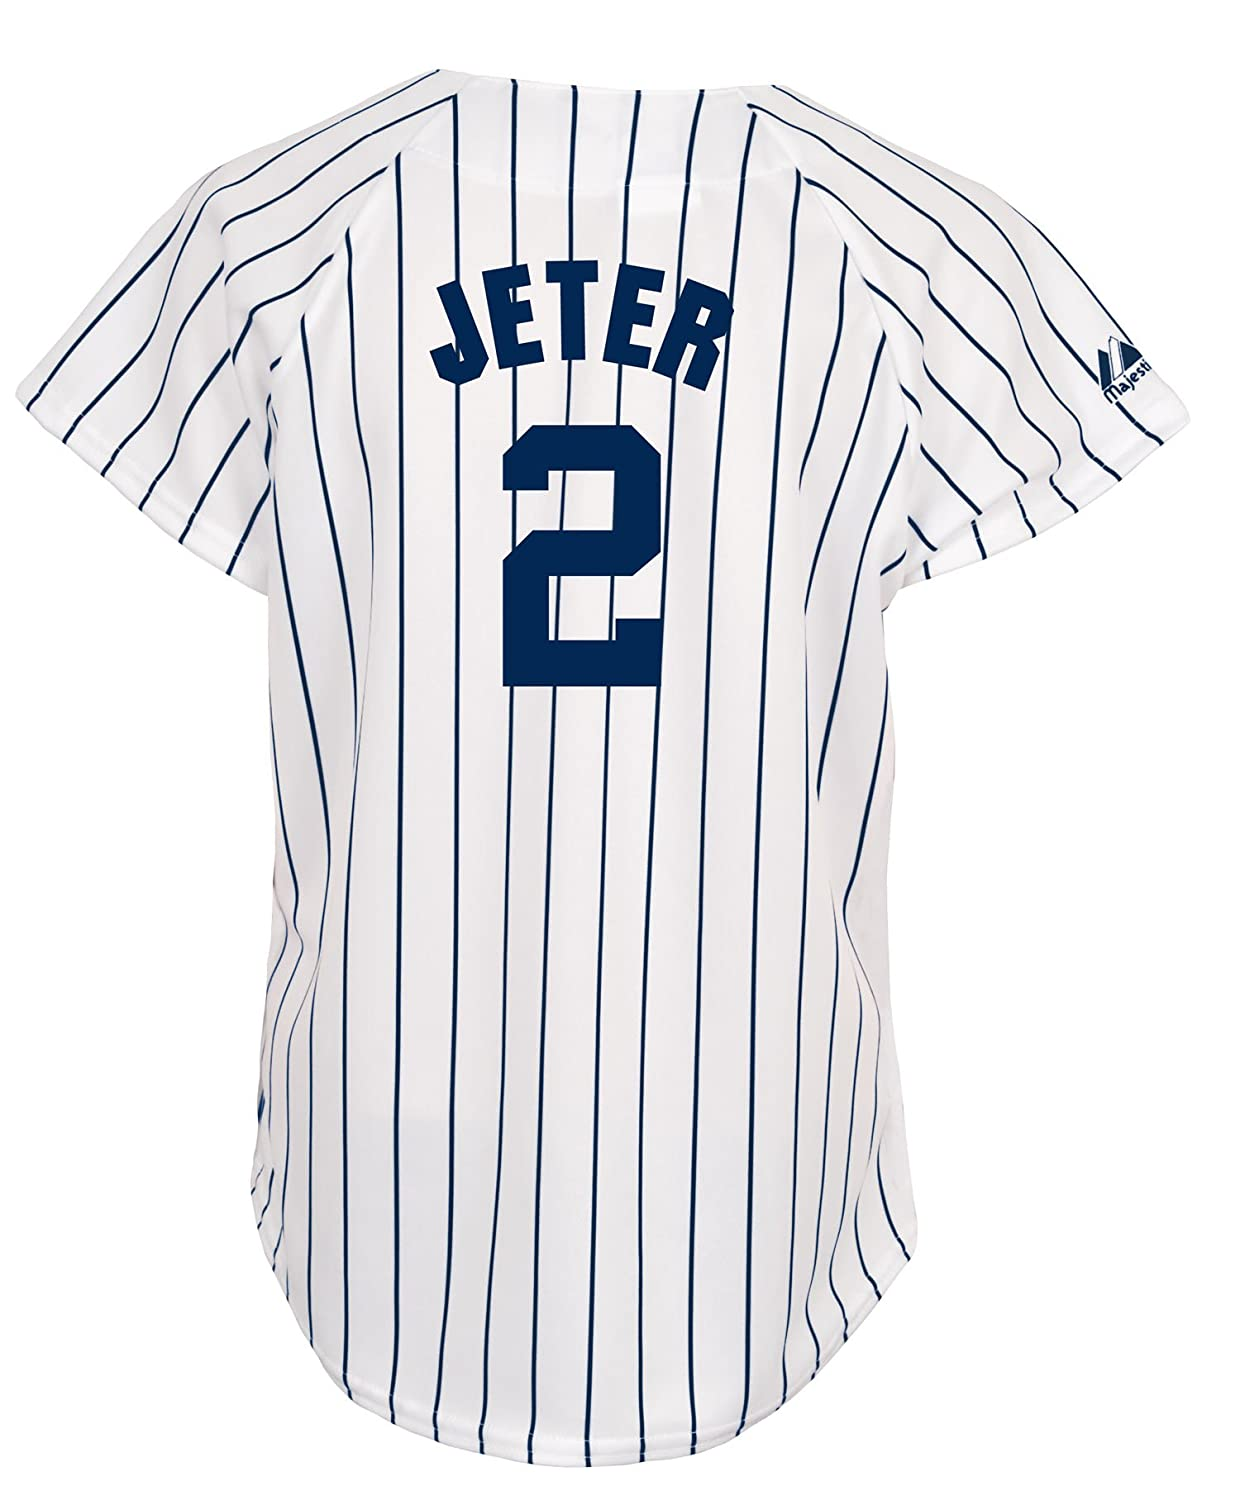 finest selection 3c8ee eed34 MLB New York Yankees Derek Jeter Women's White/Navy Fashion Replica Jersey